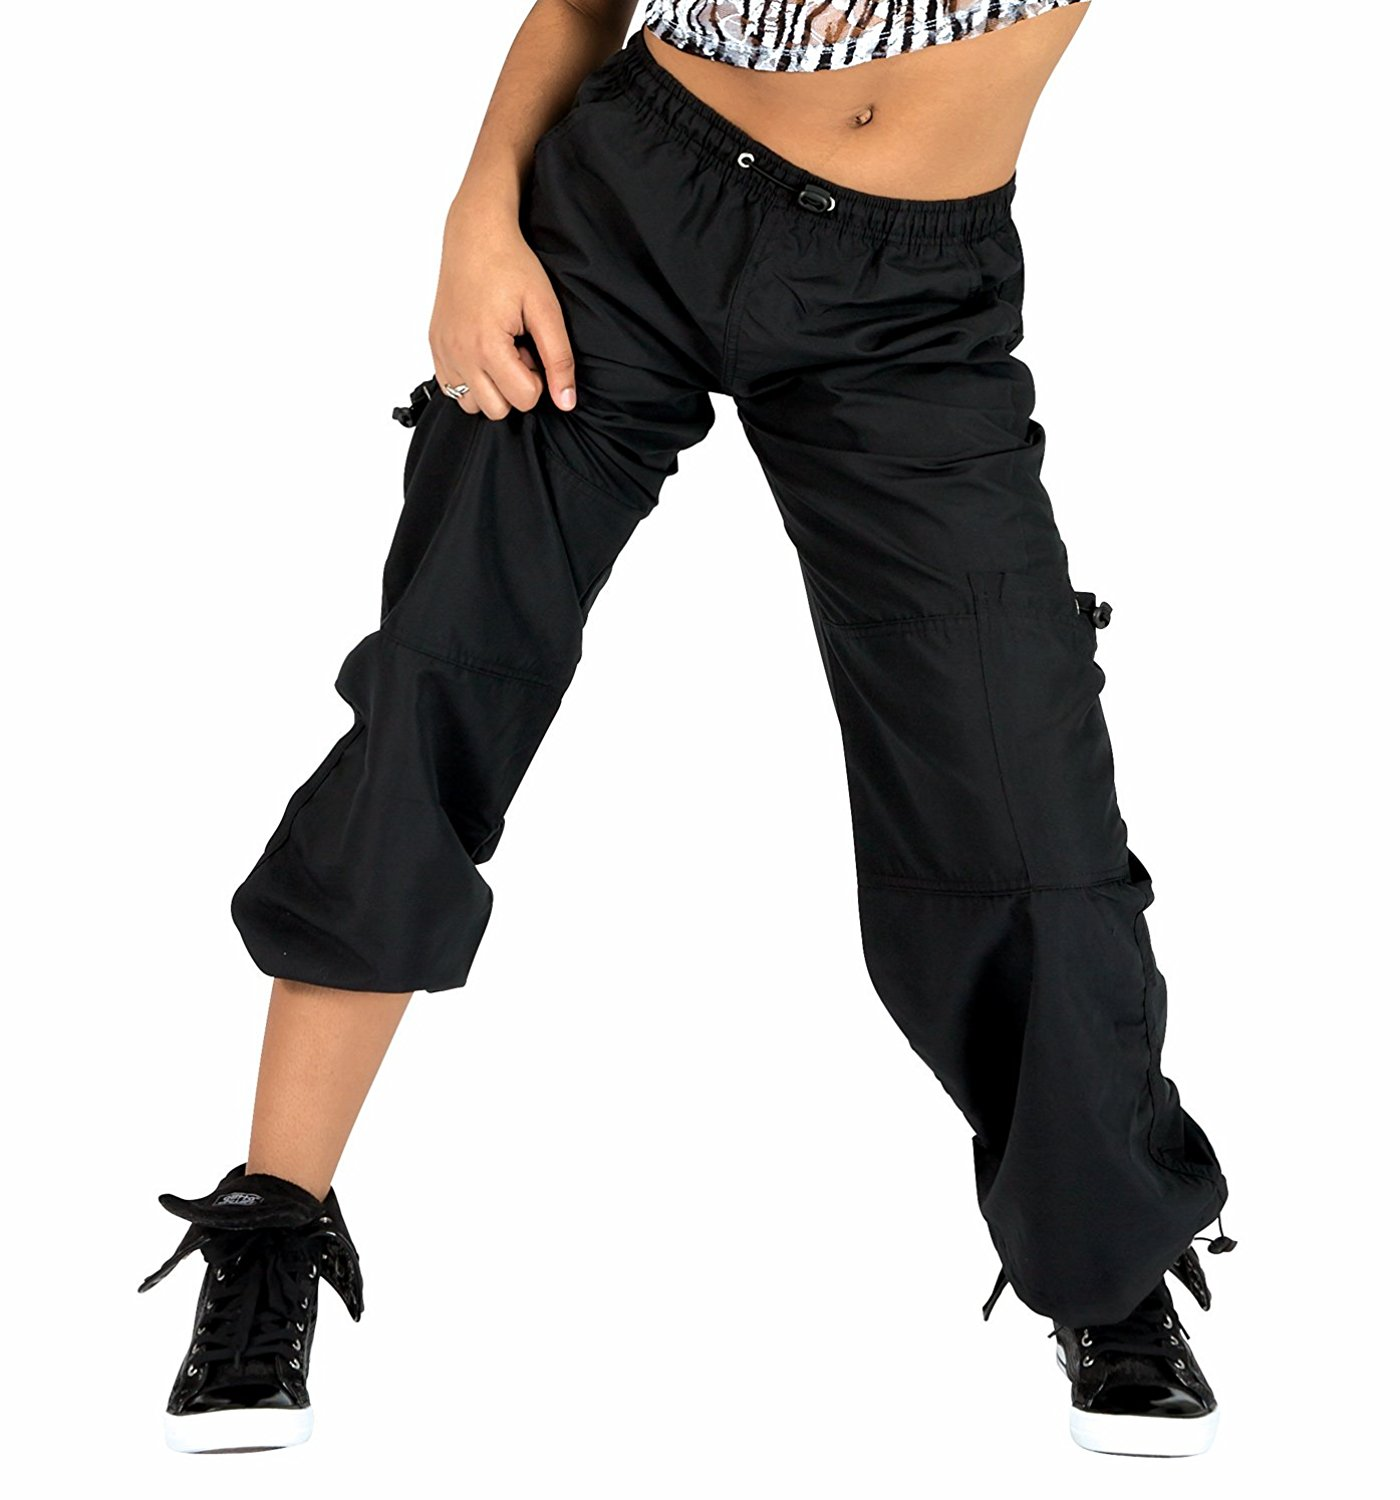 dance pants adult unisex cargo pants with drawstring waist,bp104 QOVUTXD